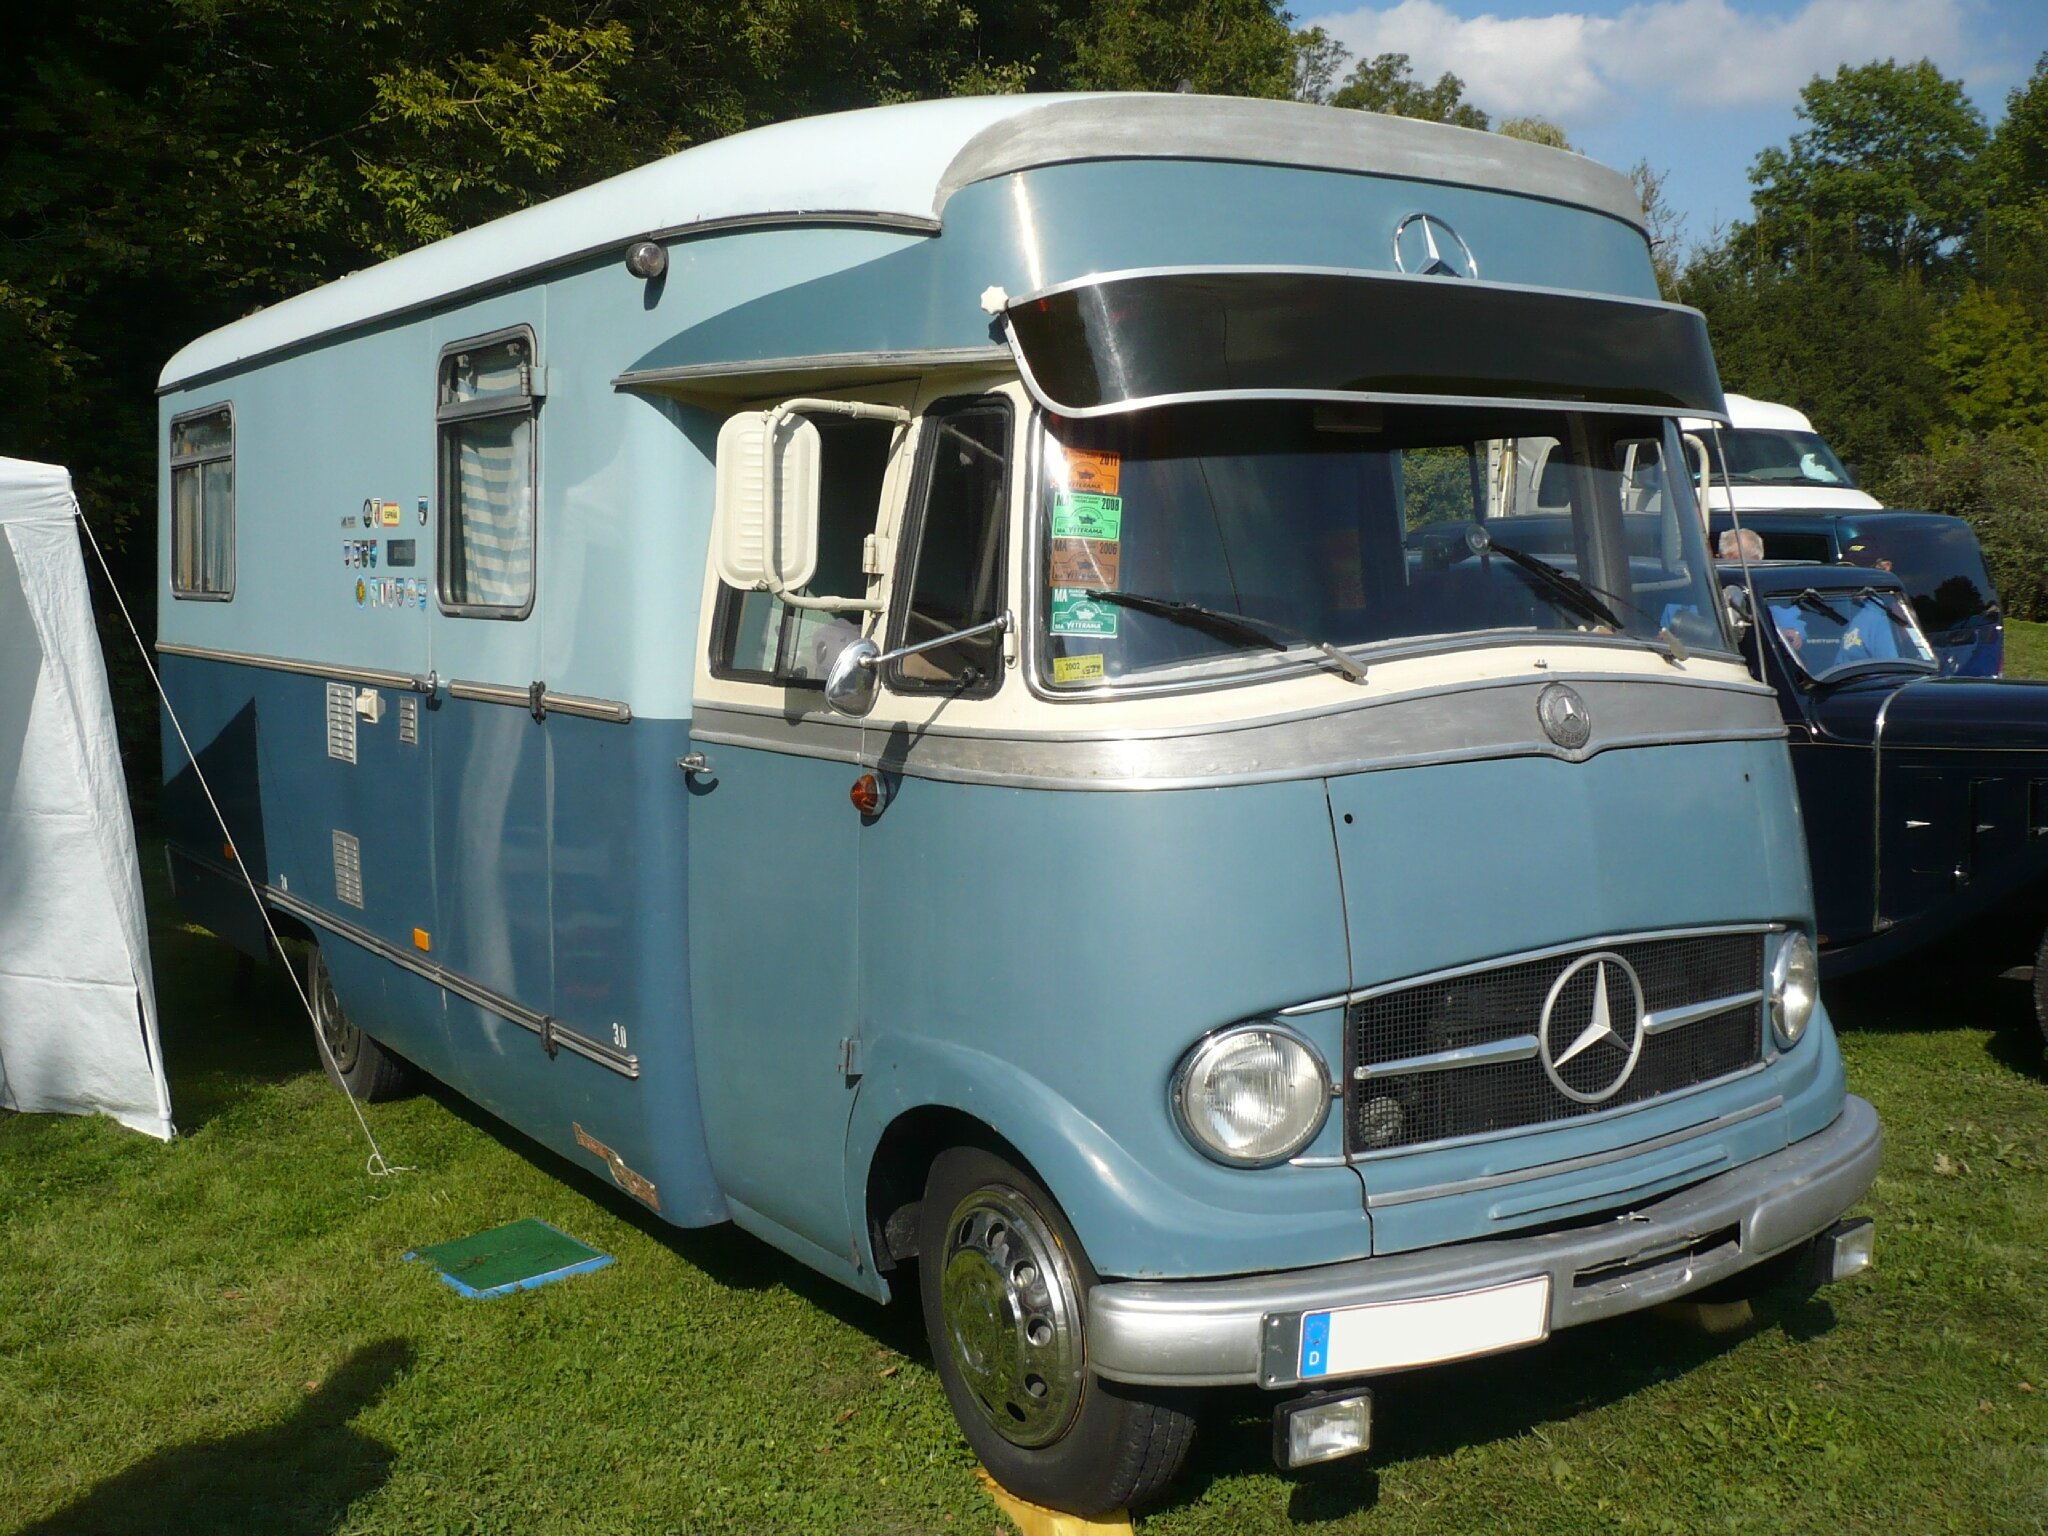 mercedes l319 am nag camping car karosserie berger vroom vroom. Black Bedroom Furniture Sets. Home Design Ideas